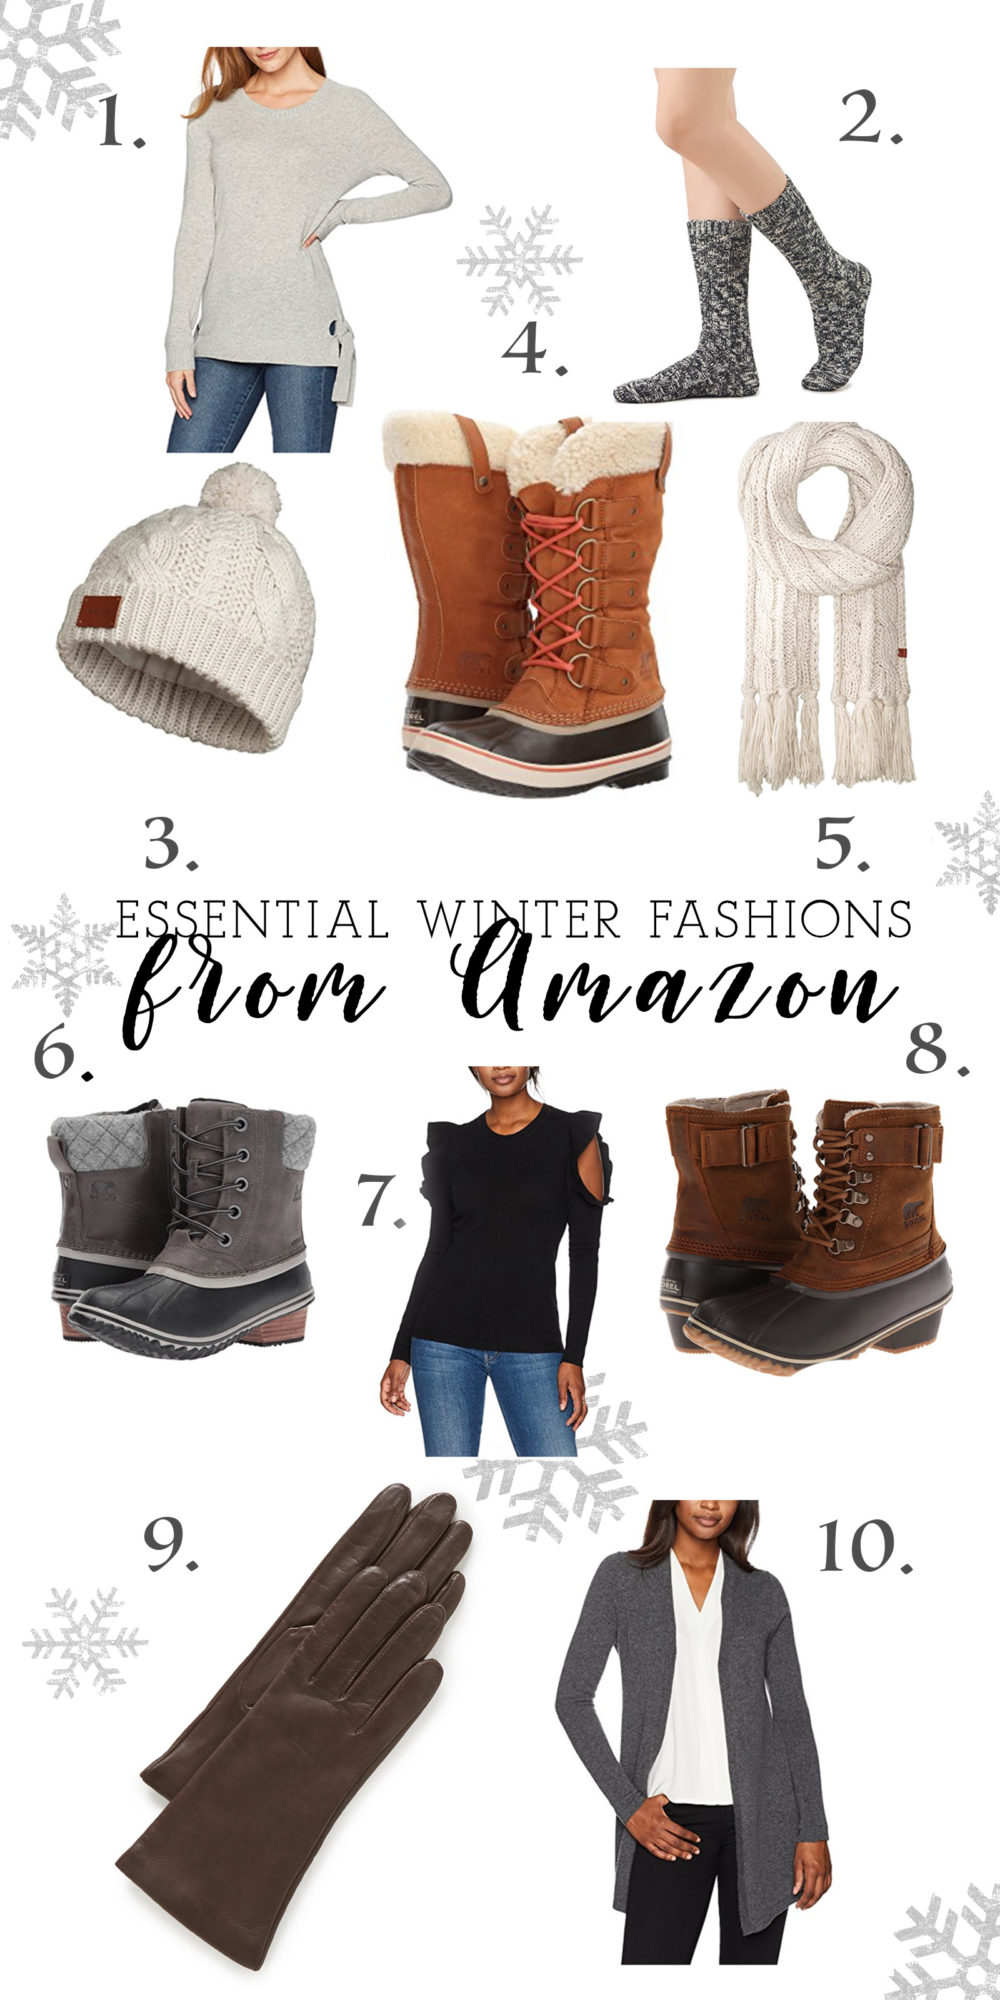 Petite Fashion and Style Blog | Fashion for Petite Women | Essential Winter Fashions from Amazon